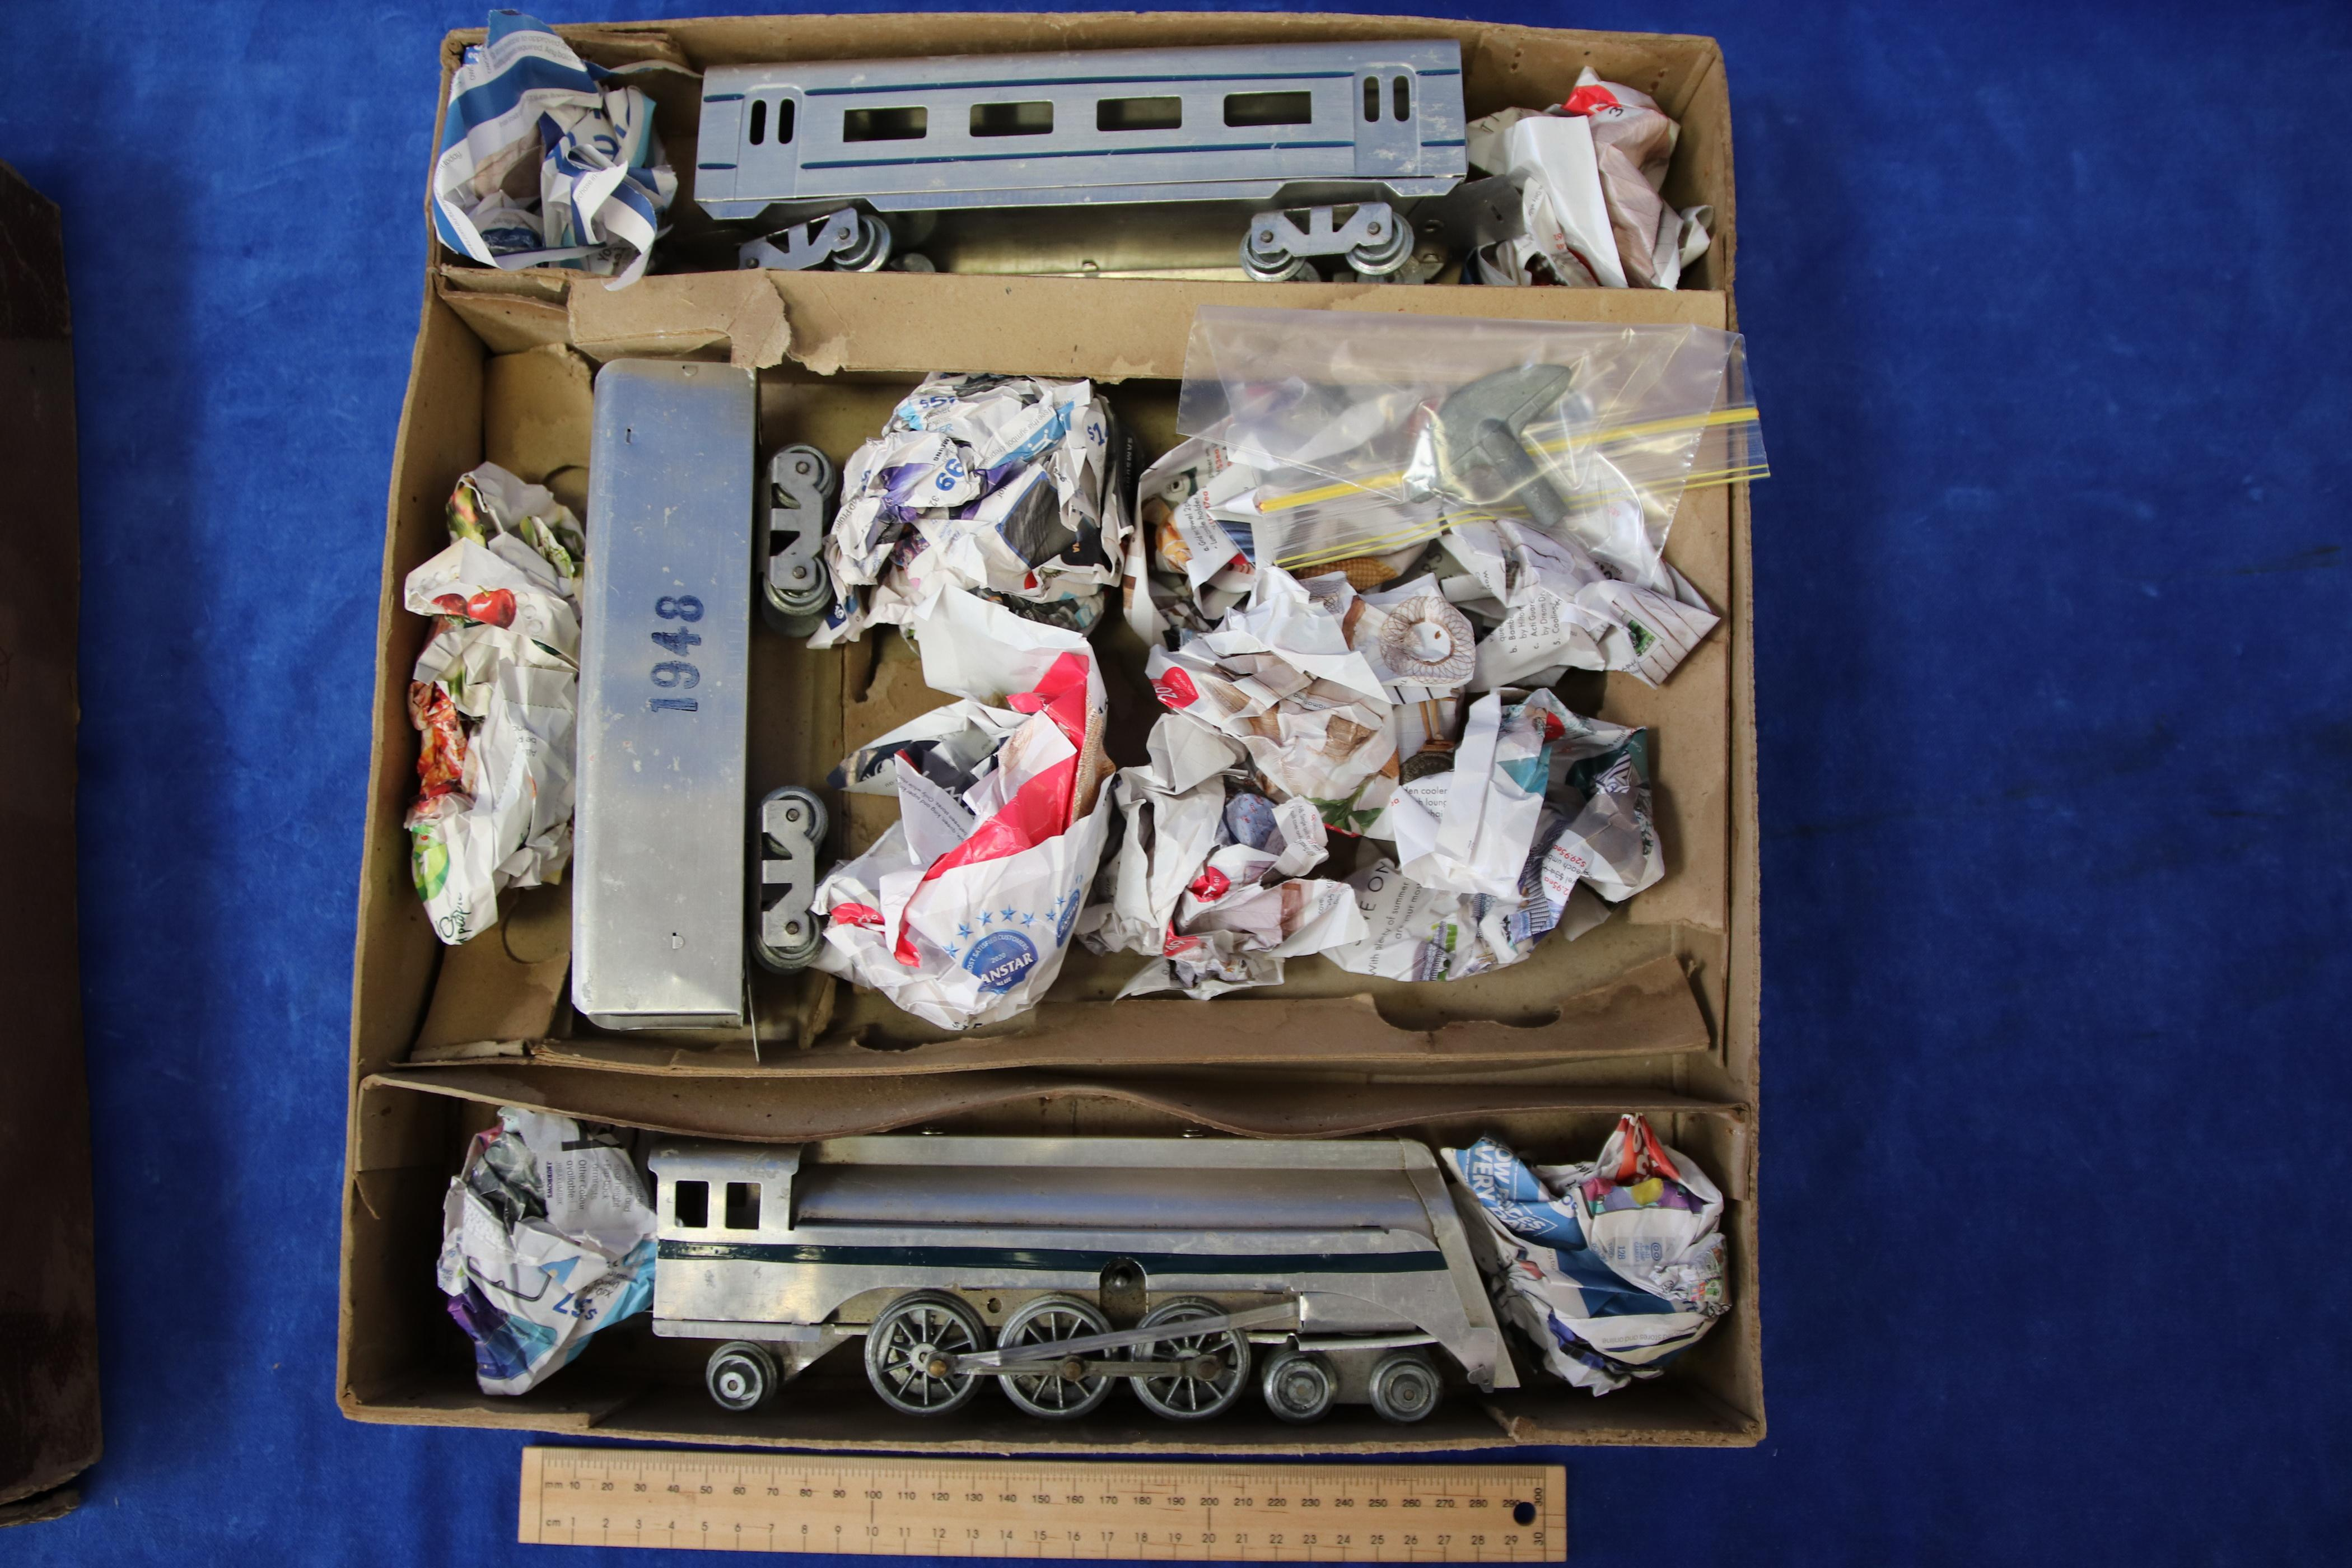 EARLY 1948 MAURALYN SILVER CHIEF O GAUGE TRAIN SET IN BOX TESTED RUNS, ALUMINIUM CLOCKWORK TRAIN, ORIGINAL BOX